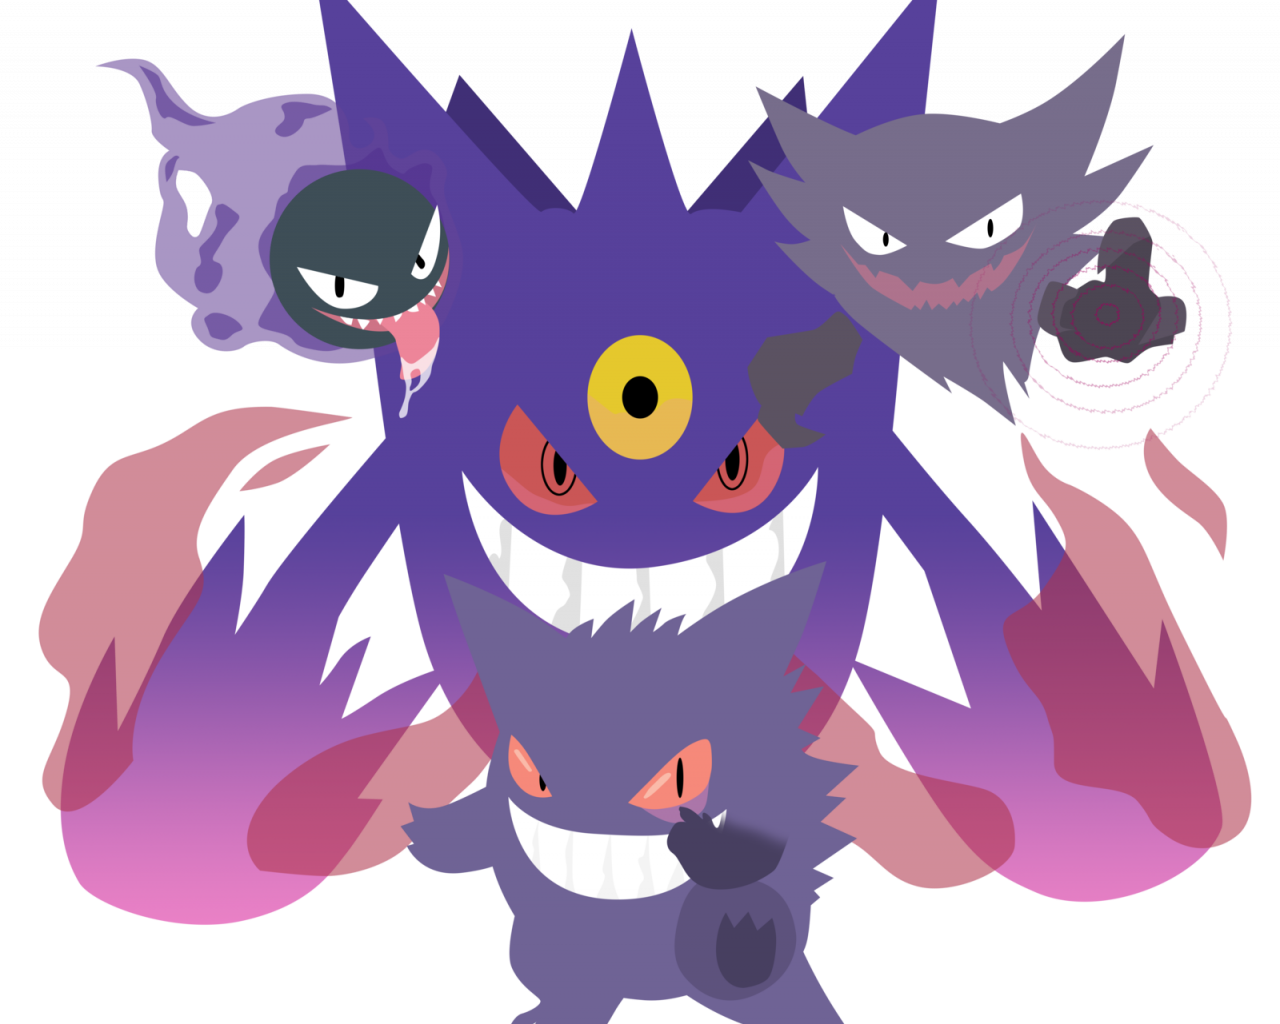 Free download Mega Gengar Family Pokemon Vector by firedragonmatty  [1600x1431] for your Desktop, Mobile & Tablet | Explore 49+ Wallpaper Mega  Gengar Pokemon | Wallpaper Mega Gengar Pokemon, Mega Gengar Wallpaper, Shiny